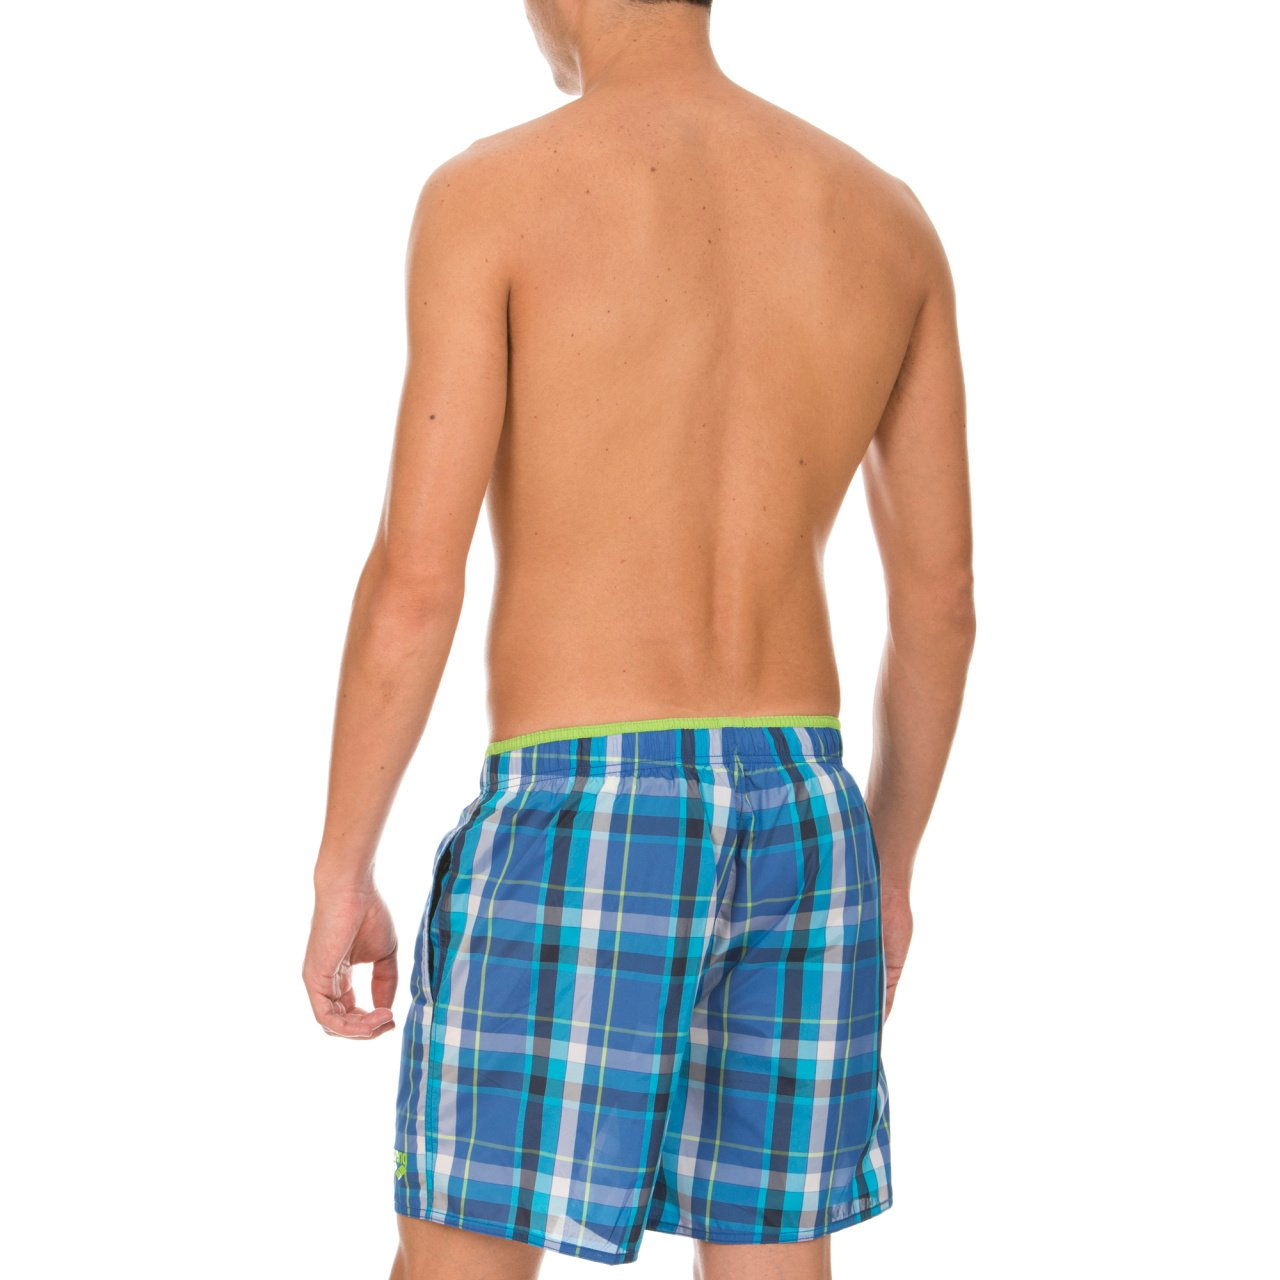 Arena Men's Swimming Trunks Boxer Yarn Dyed Check blue Royal, Energy-Green